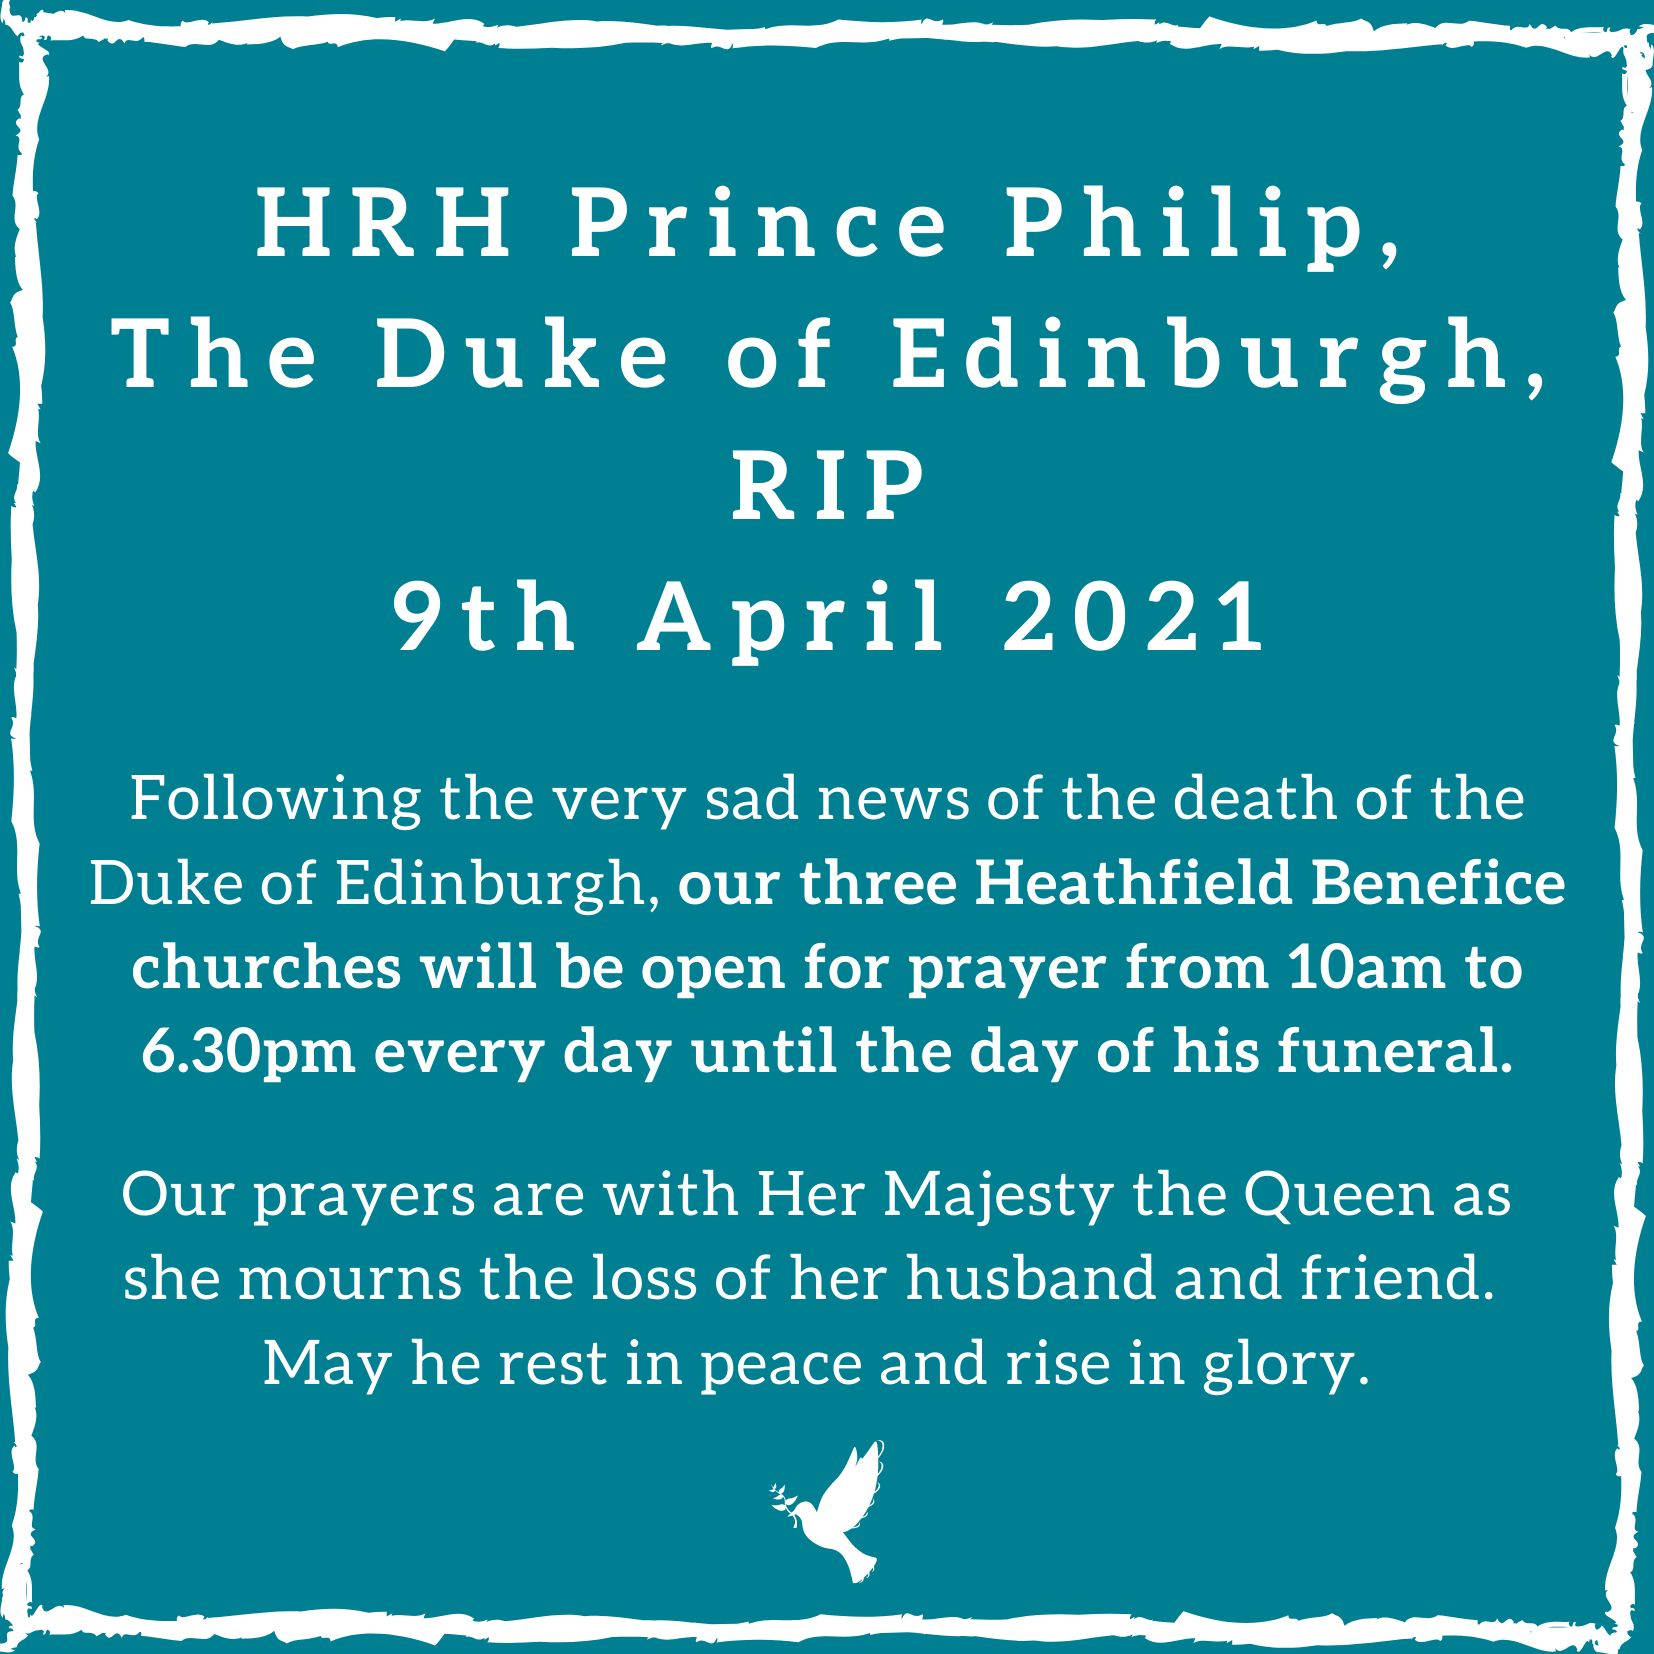 Following the sad news of the death of HRH The Duke of Edinburgh, our three Benefice Churches are open for prayer 10am to 6.30pm every day until his funeral